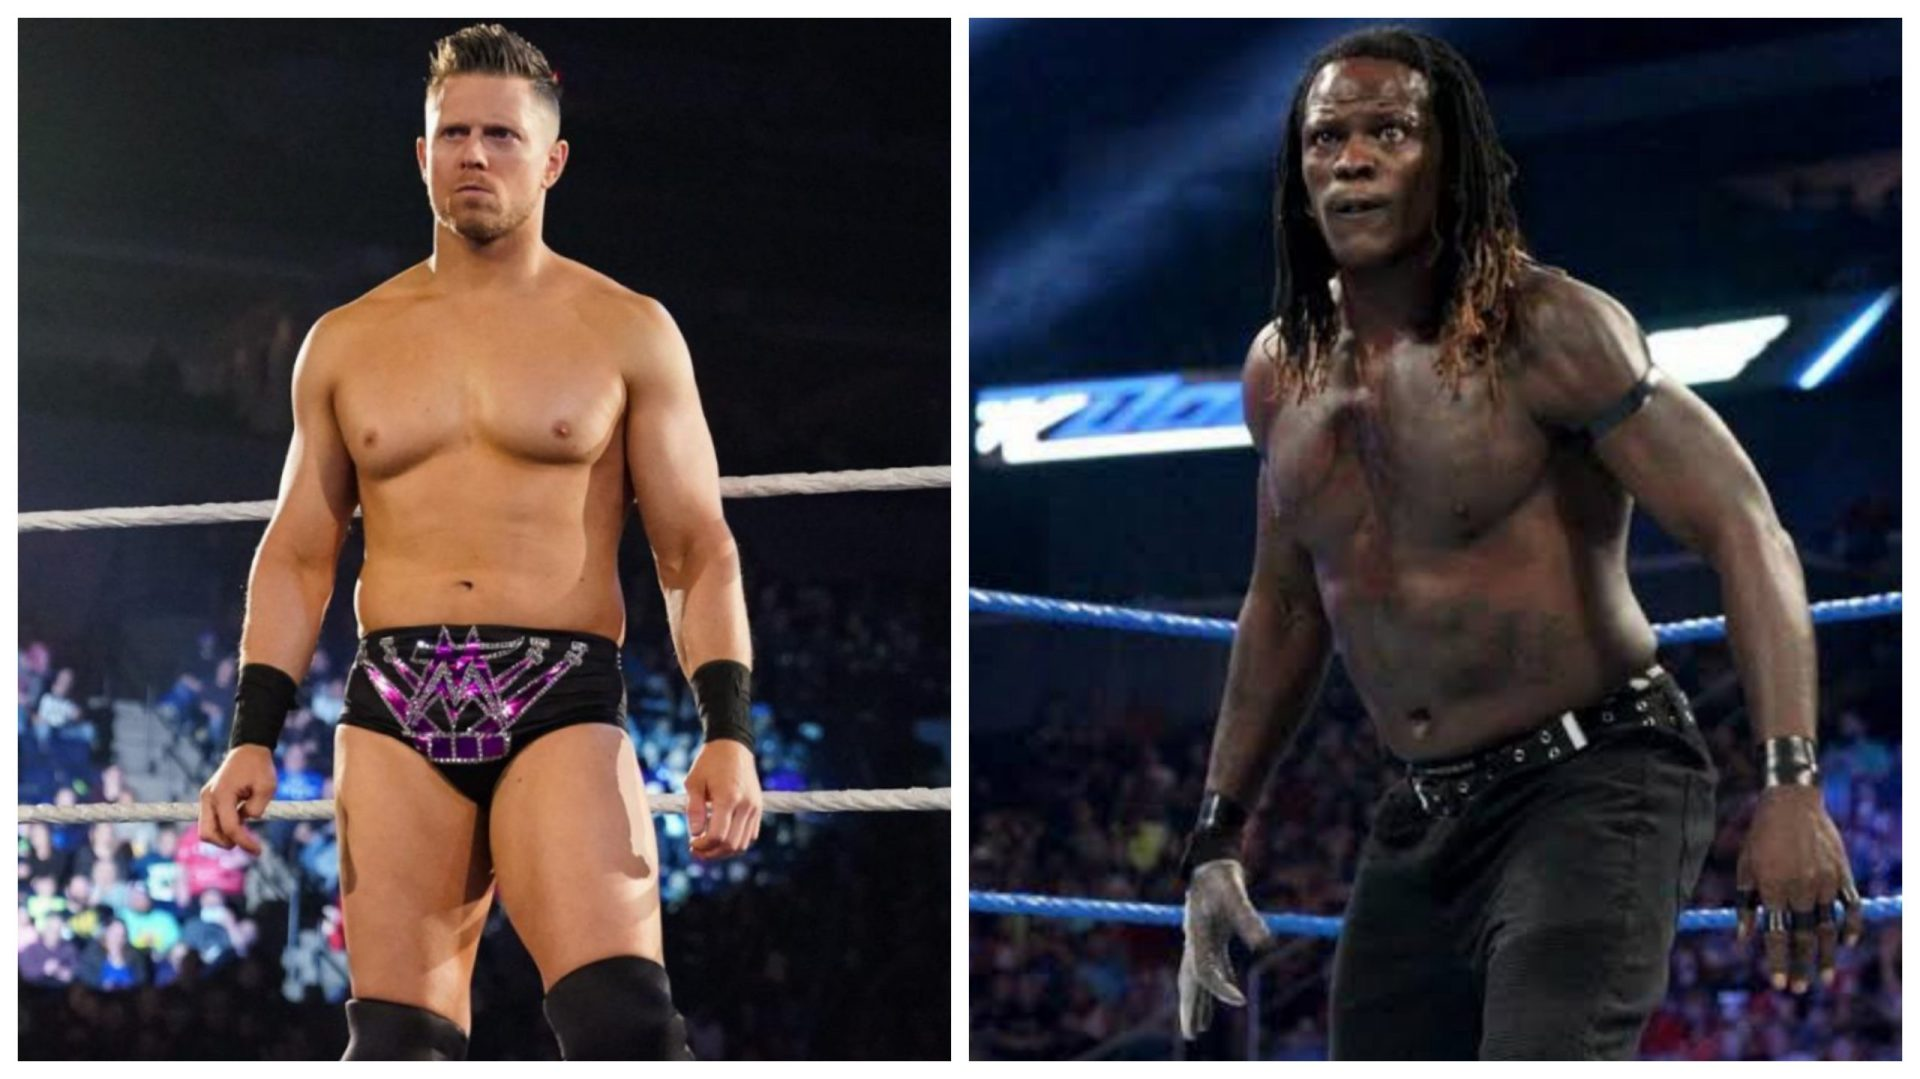 WWE Raw: R-Truth no longer 24/7 Champ, The Miz tries to cash in MTB - THE SPORTS ROOM